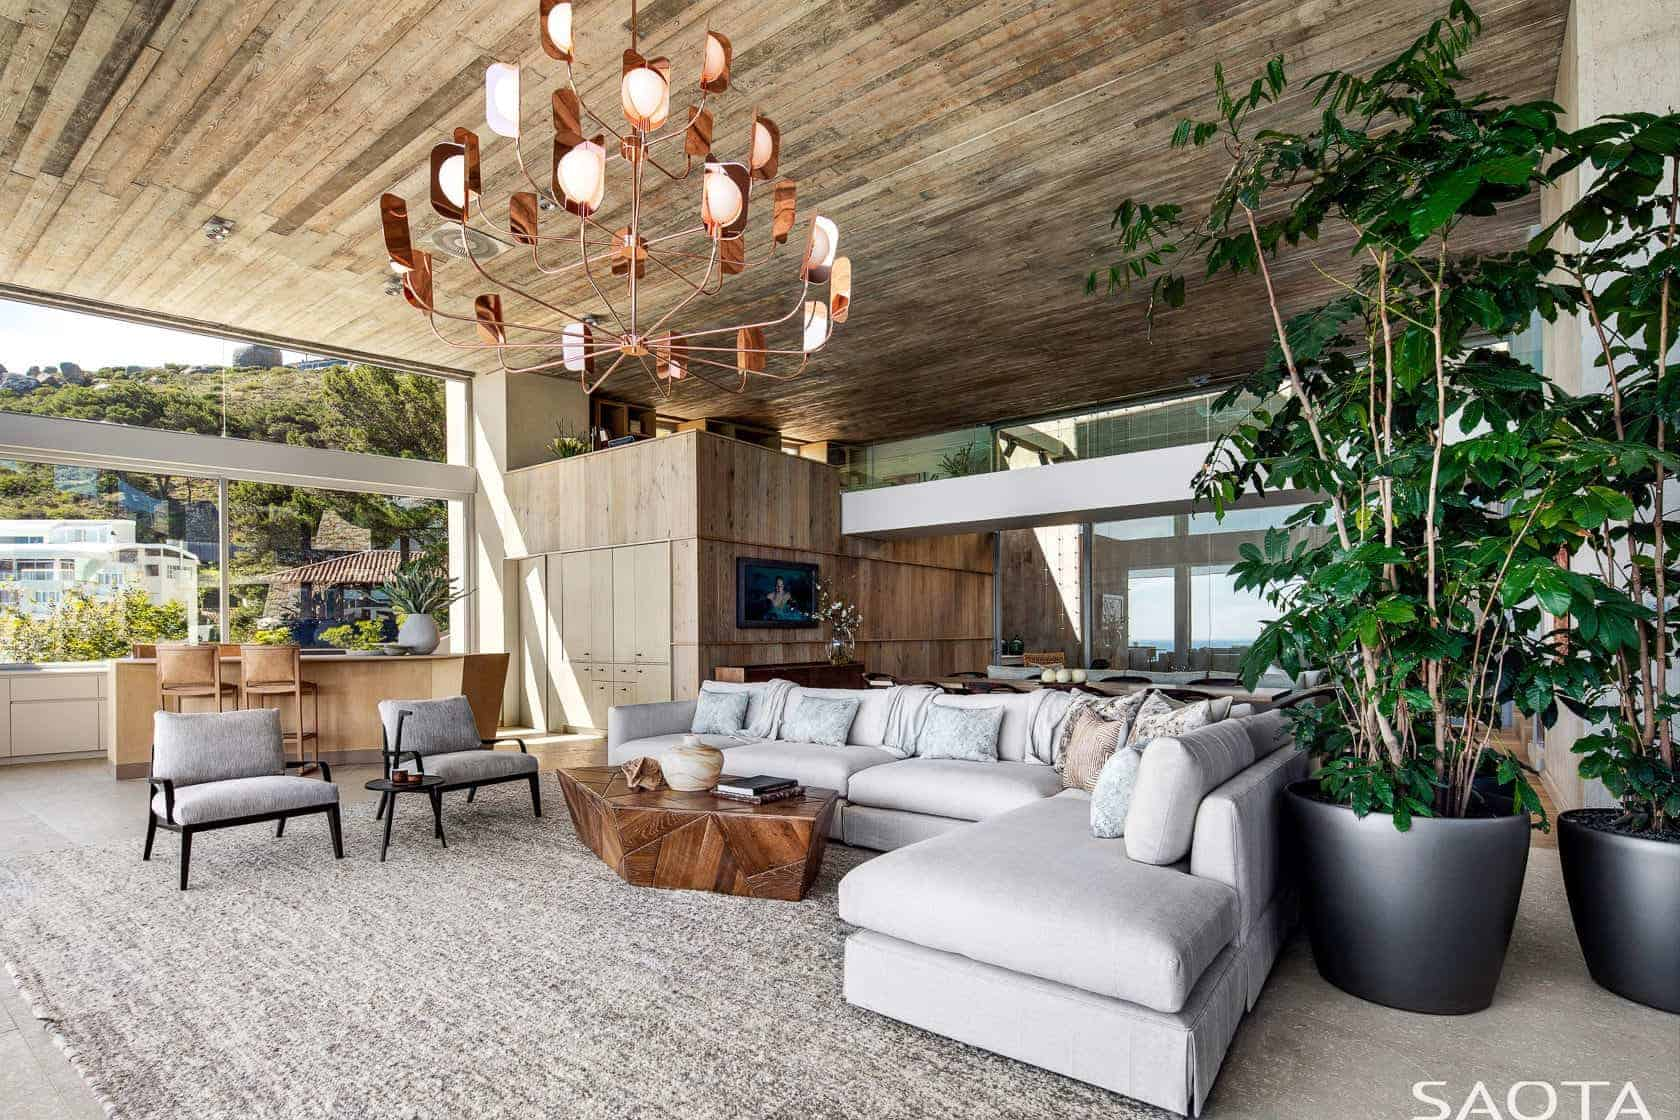 A living room that gives you warmth and a rustic feel. It features a huge statement chandelier hanging on a light-colored wooden ceiling, a gray L-shaped sectional sofa with a wooden center table over a gray shaggy rug and two large indoor plants that add life to the room.